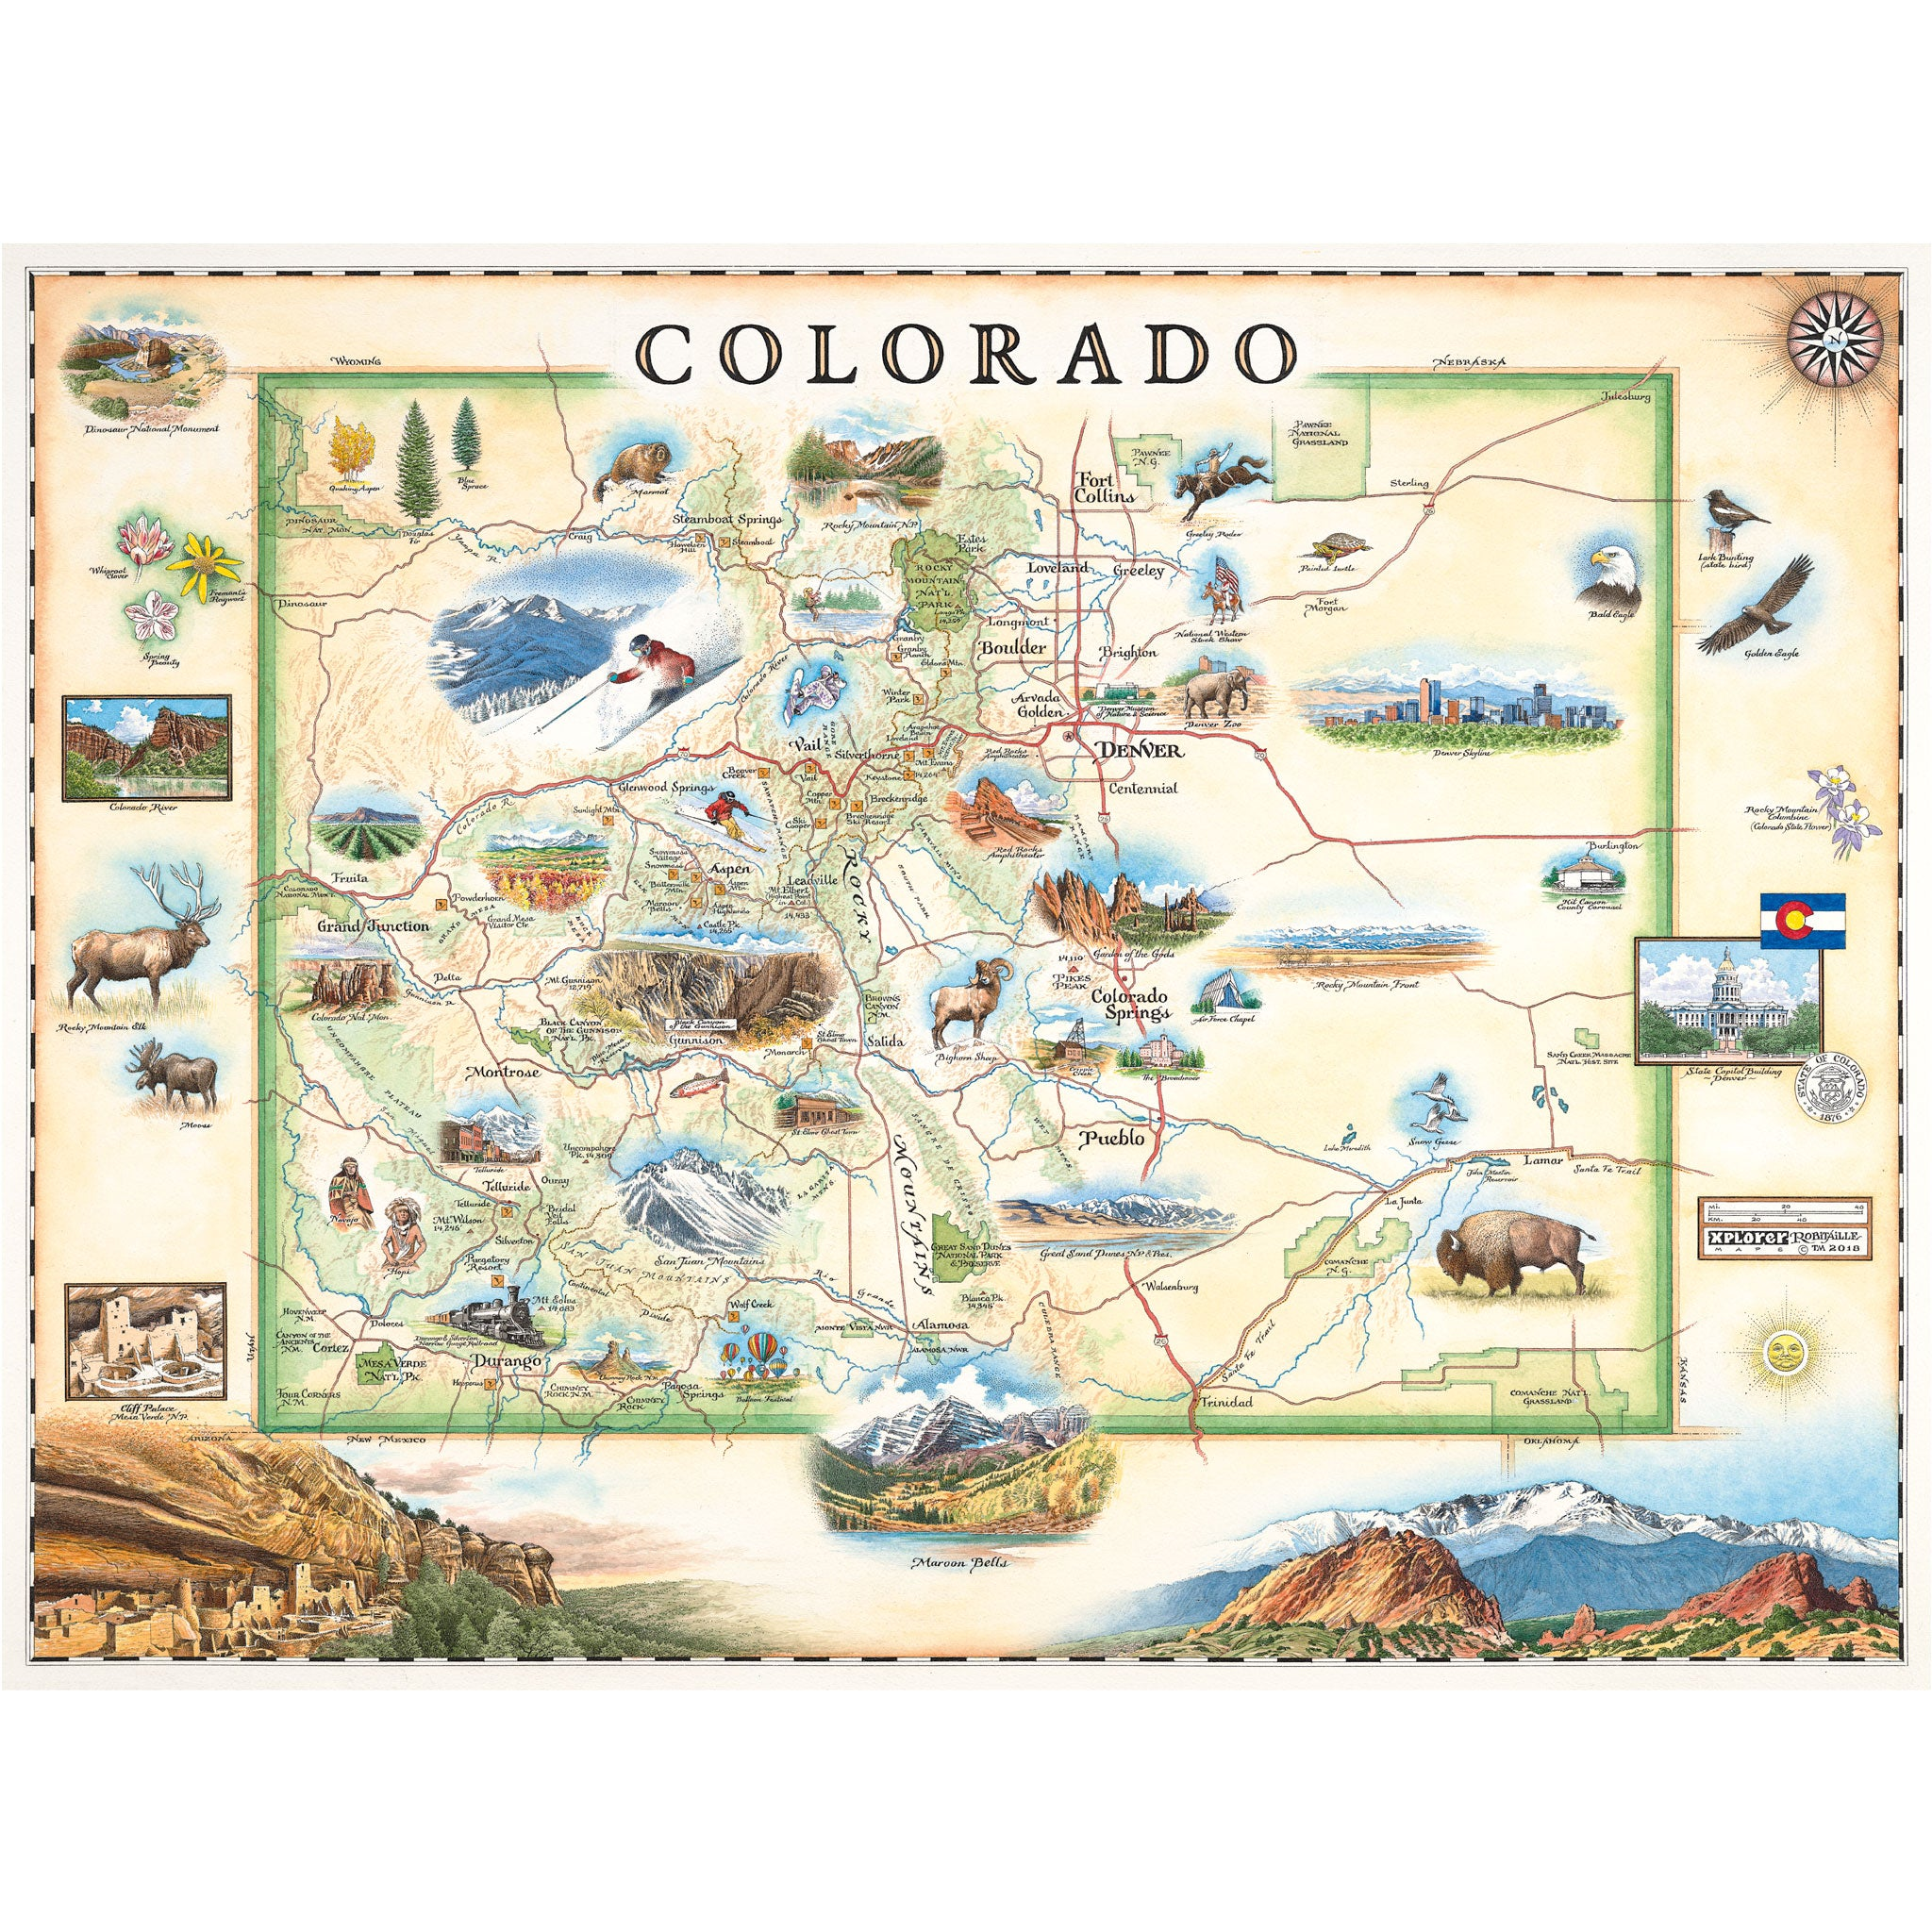 Colorado State Map on co map, connecticut map, illinois map, nevada map, georgia map, hawaii map, new york map, midwest map, oregon map, north carolina map, pikes peak map, arkansas map, utah map, california map, oklahoma map, wyoming map, montana map, arizona map, iowa map, delaware map, nebraska map, indiana map, idaho map, red feather lakes map, michigan map, florida map, kansas map, alabama map, louisiana map, texas map, alaska map,